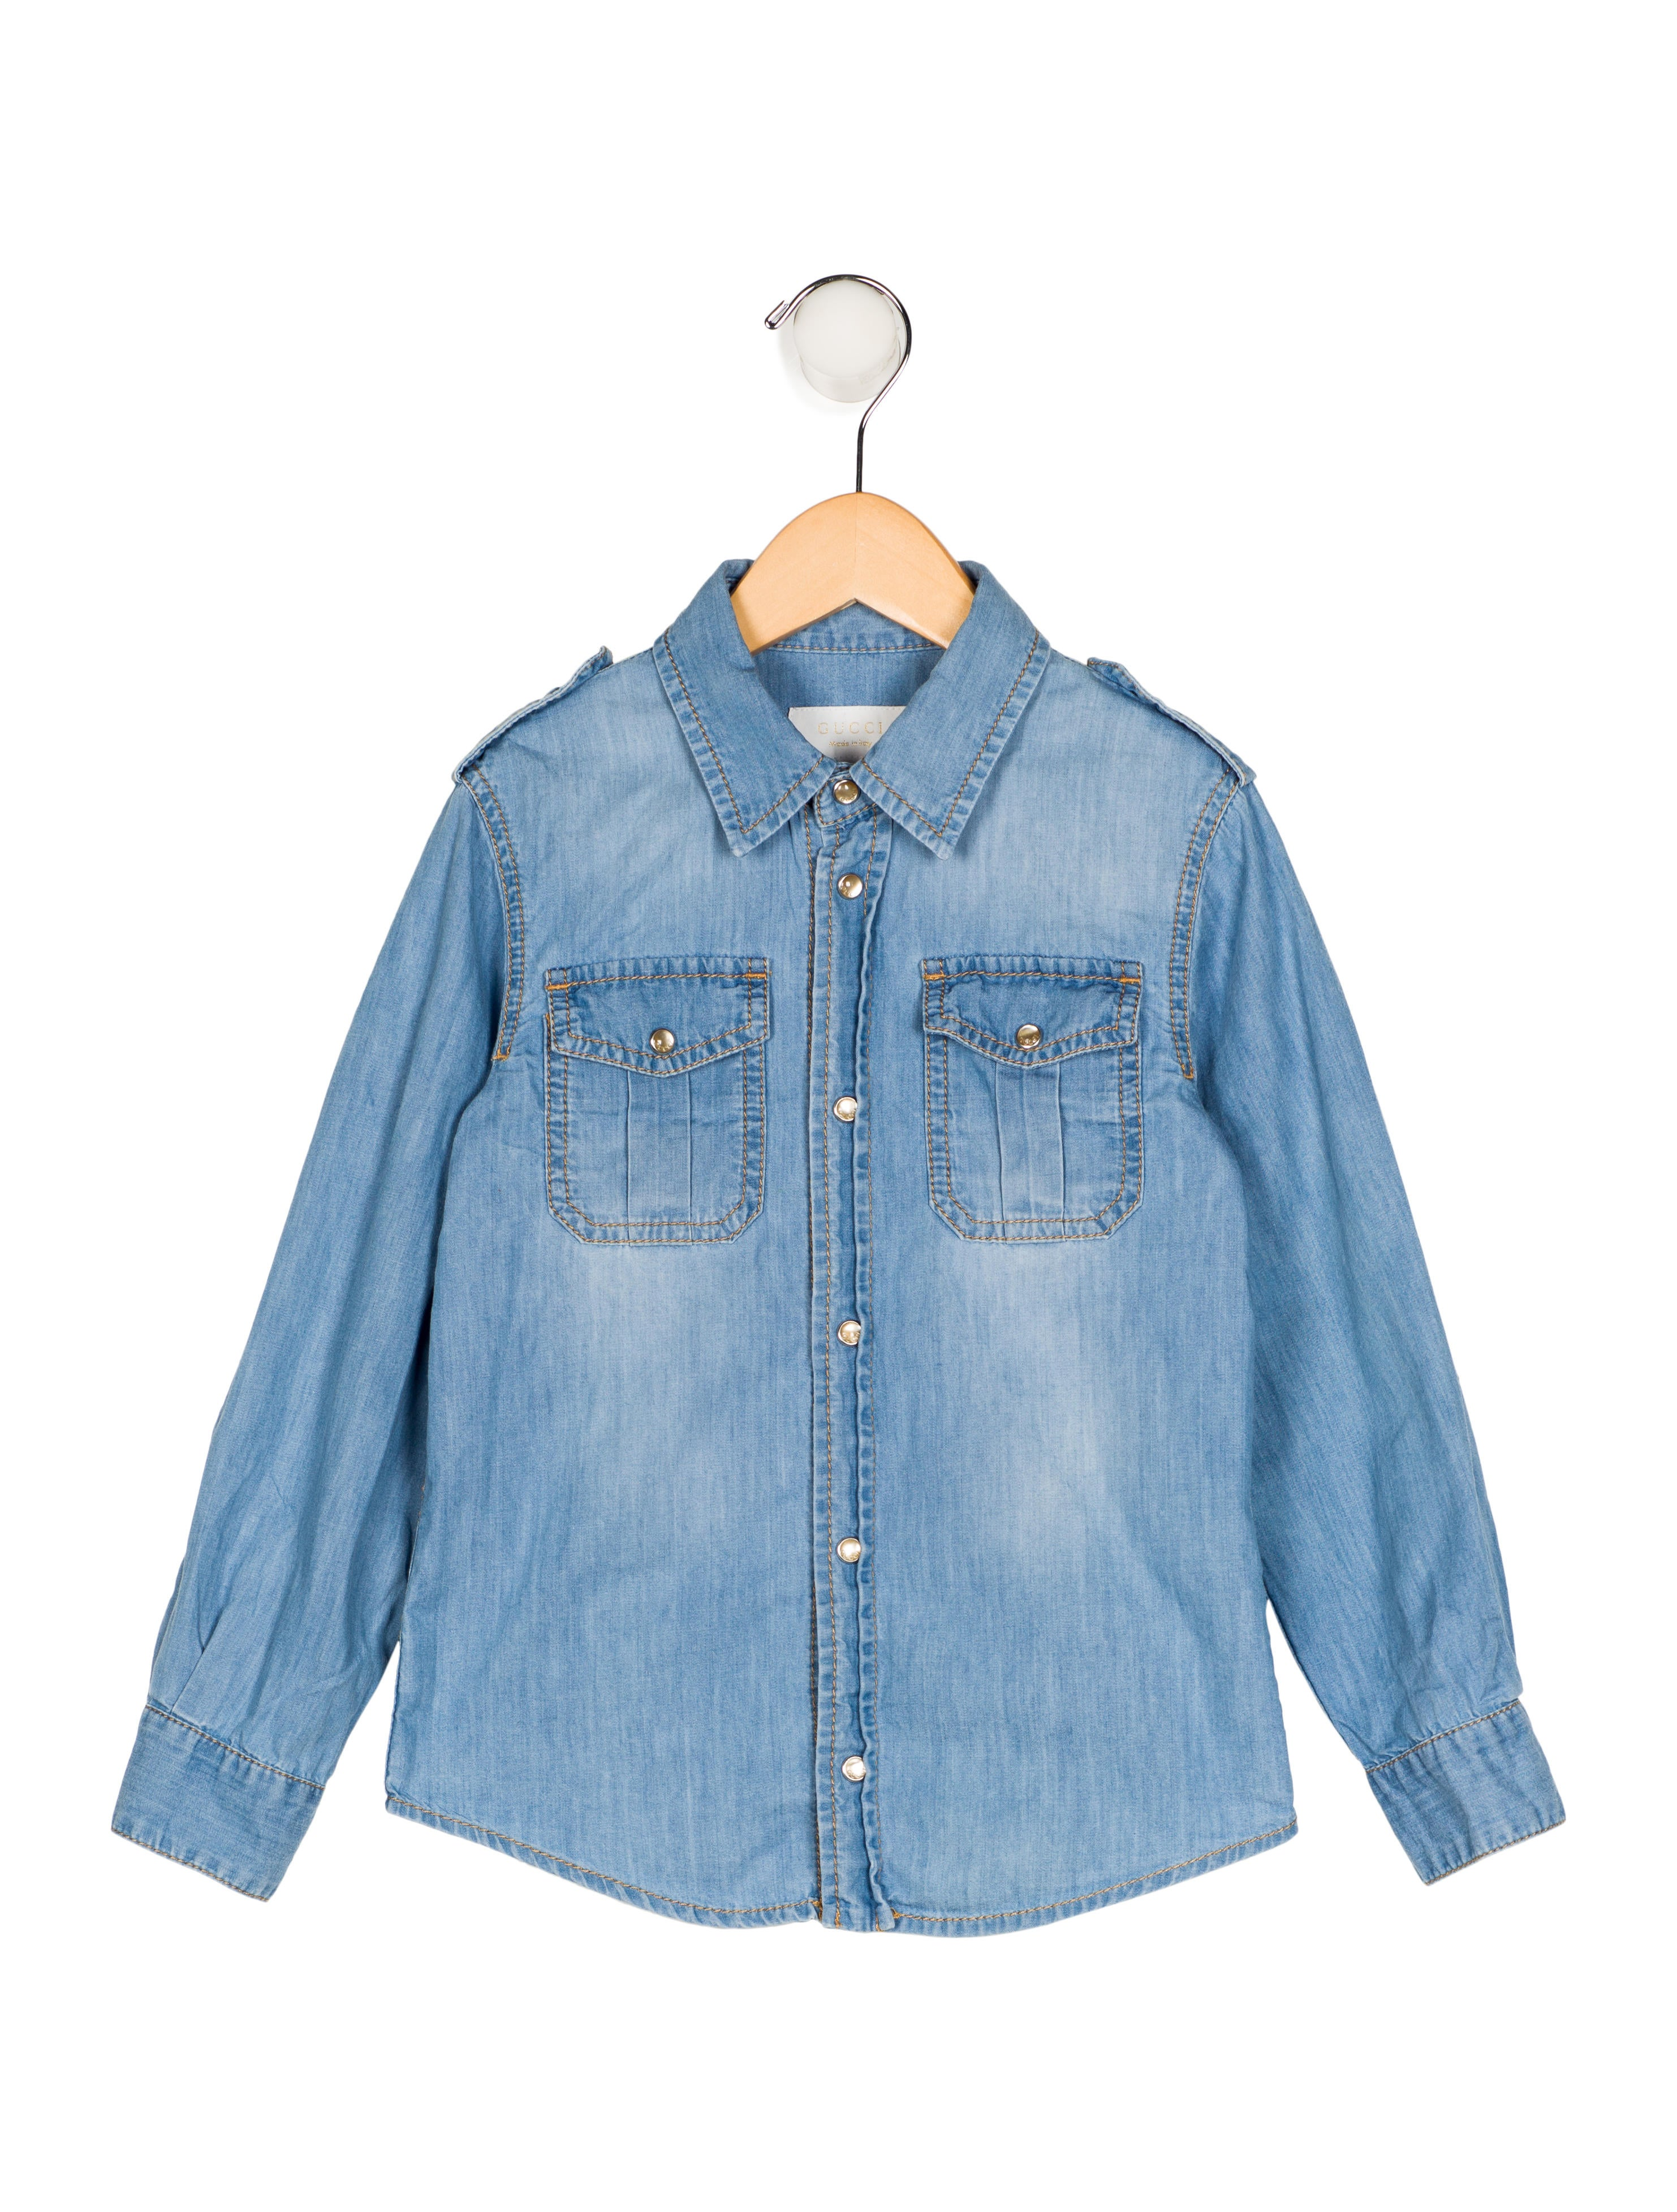 Chambray Shirt is rated out of 5 by Rated 5 out of 5 by Queen mimi from Chambray shirt This shirt is so cute and looks great all day. Doesn't wrinkle or look like it's been worn all day!!!